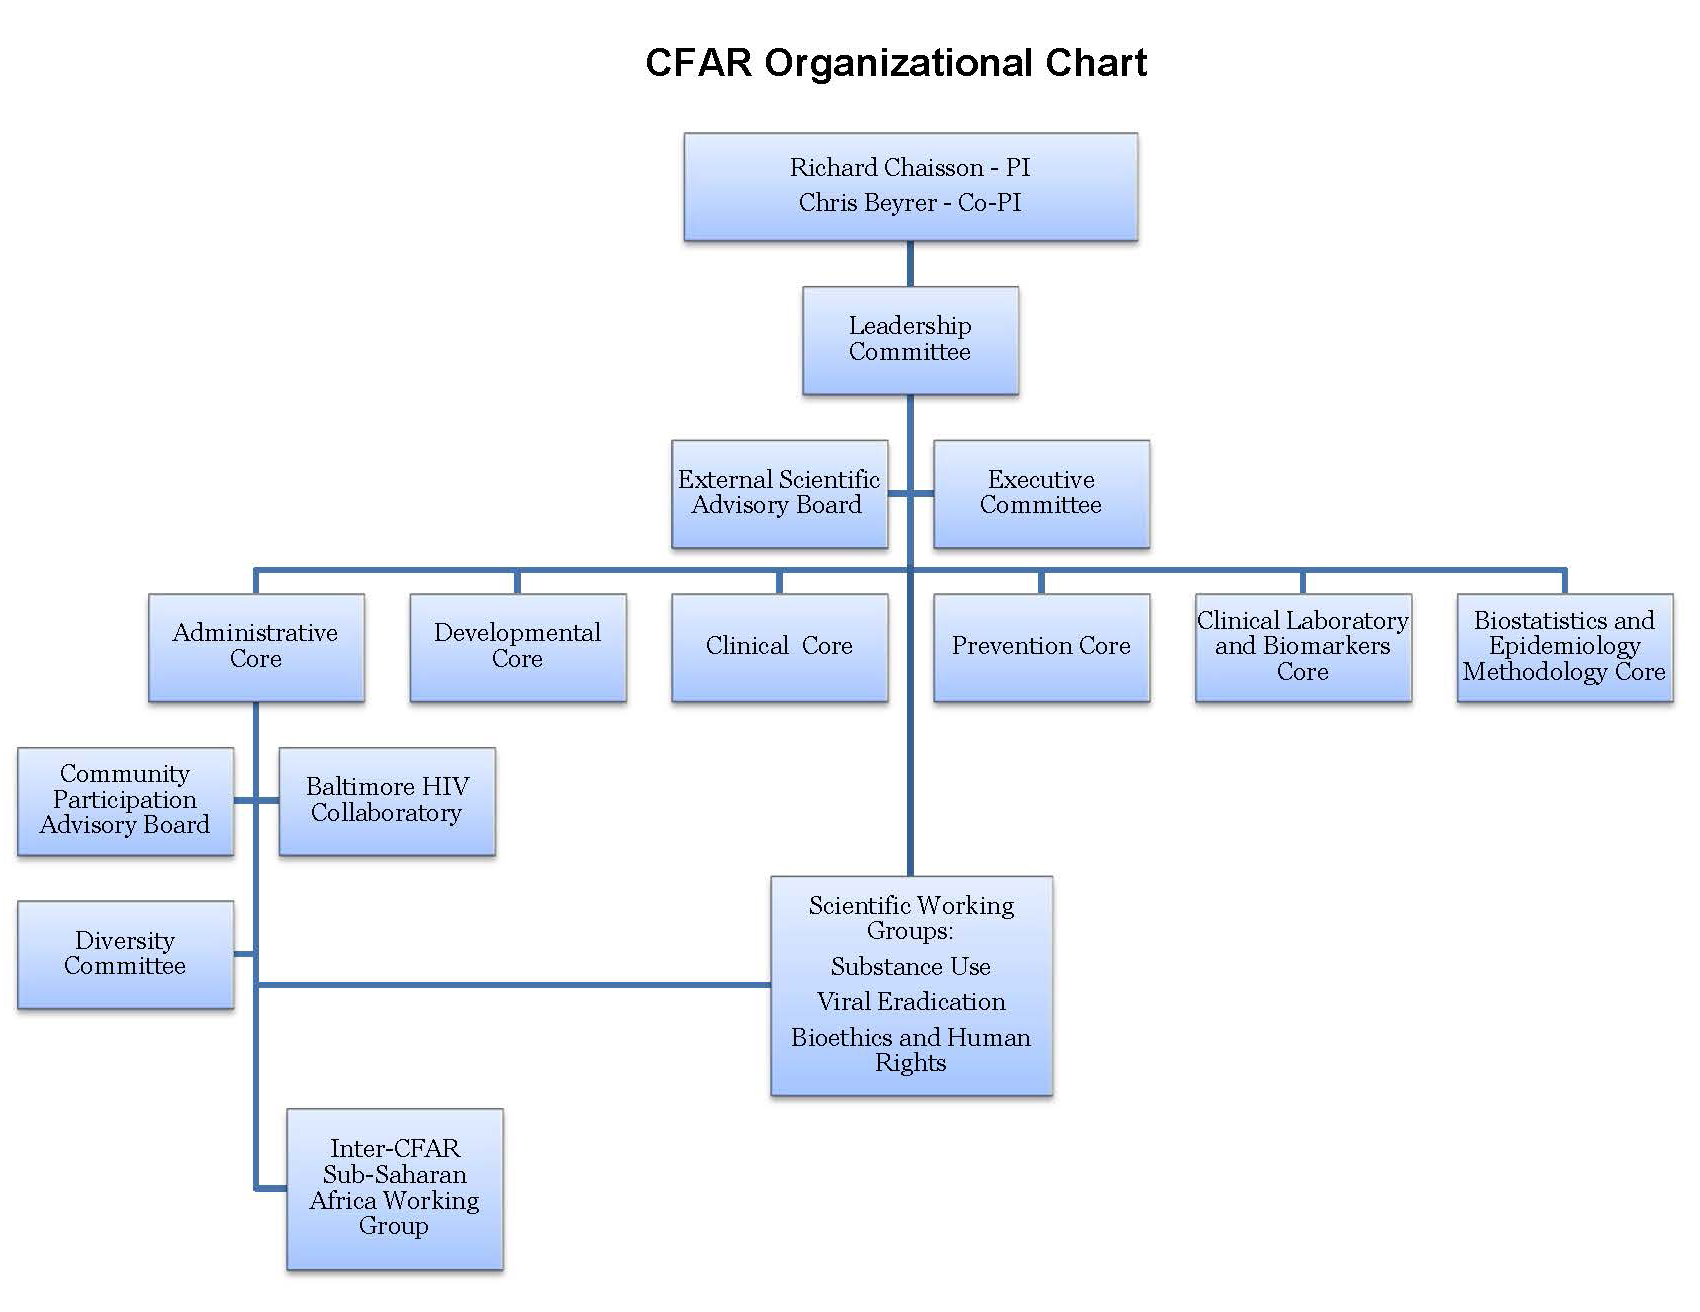 CFAR_Organizational_Chart_Update_July_10_2013_v3.jpg